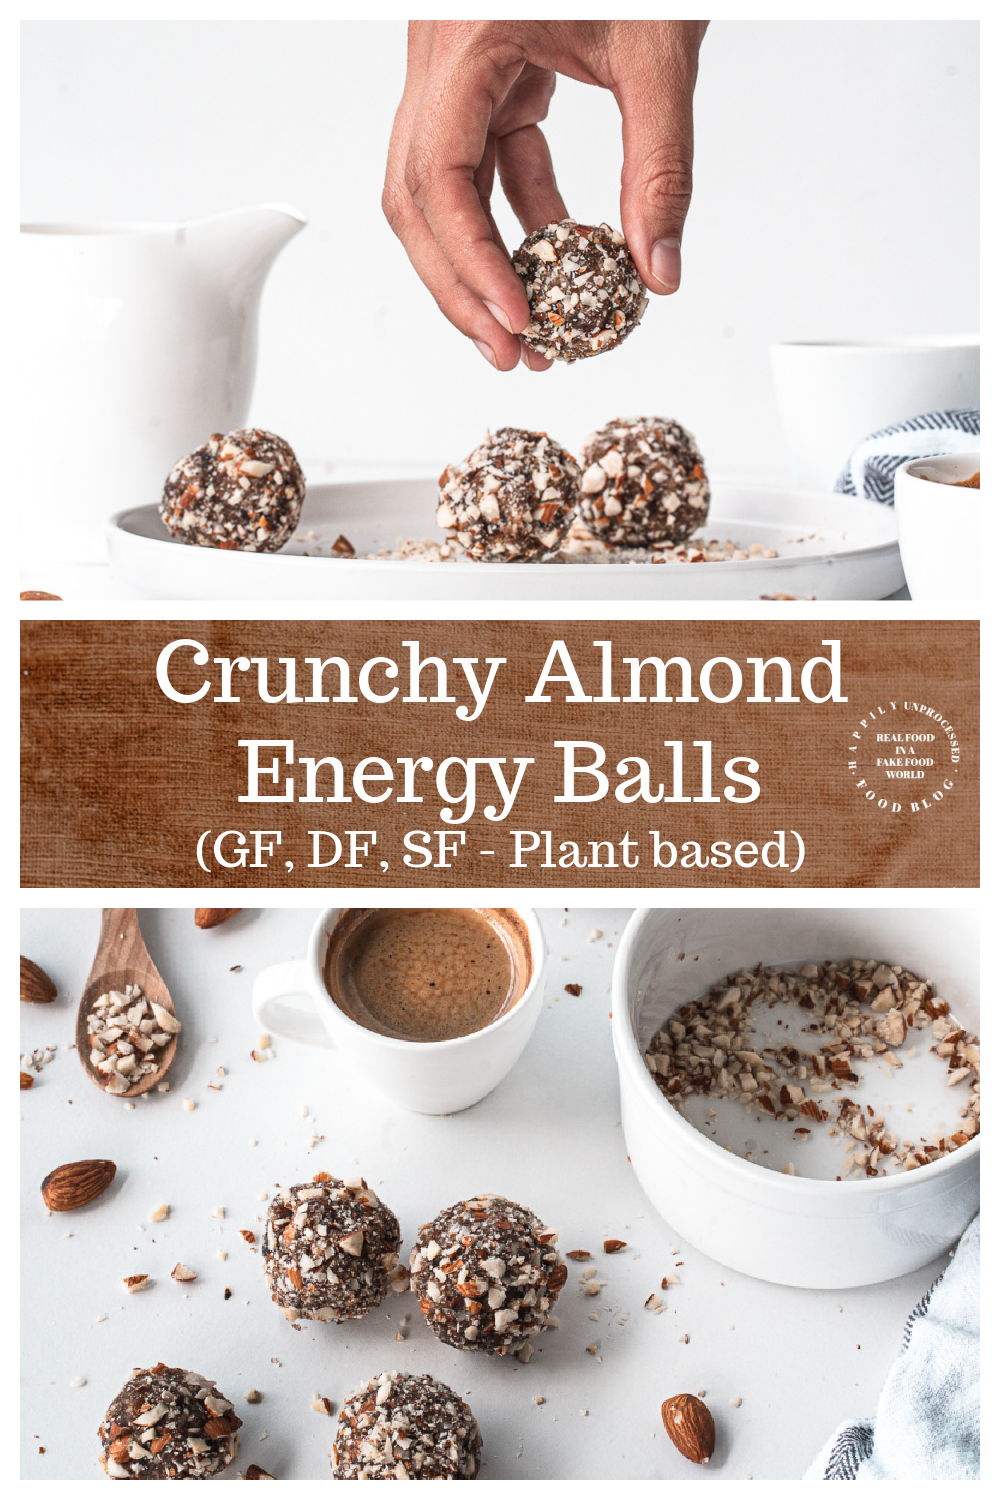 4 Ingredient Energy Balls for any time of day for a healthy alternative to packaged snacks plantbased glutenfree dairyfree - Crunchy Almond Energy Balls